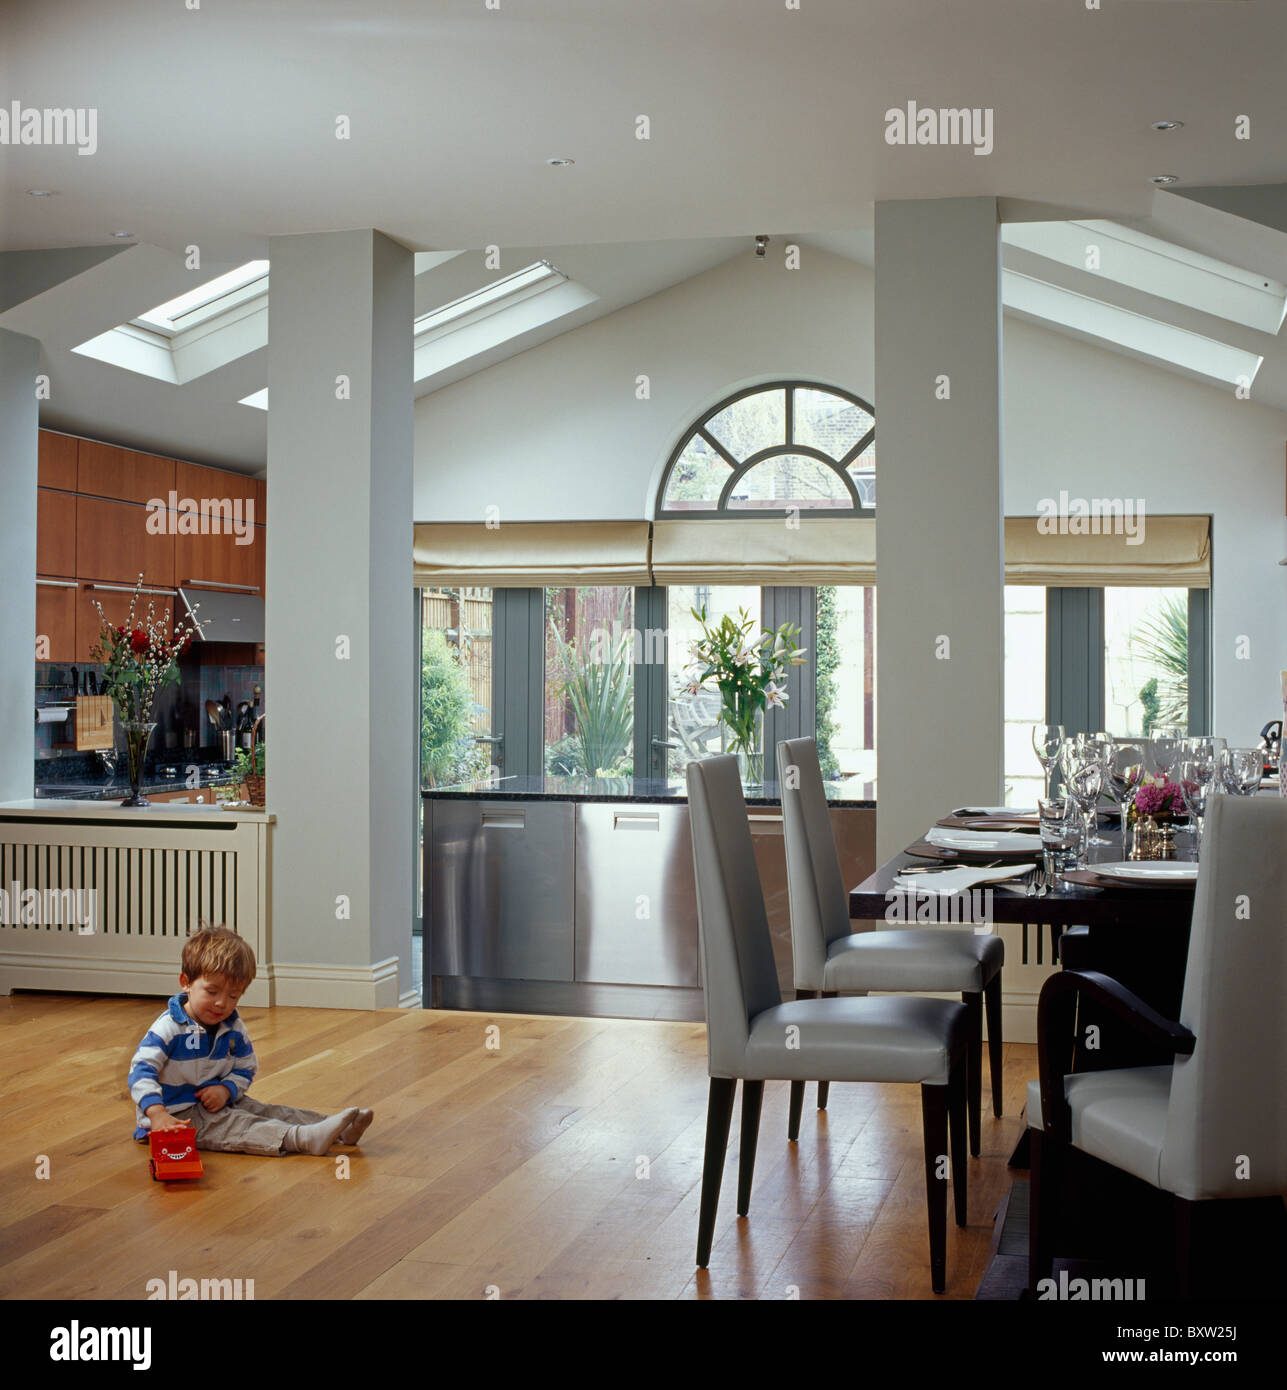 Small Boy Sitting On Wooden Floor Of Modern Kitchen Dining Room Extension